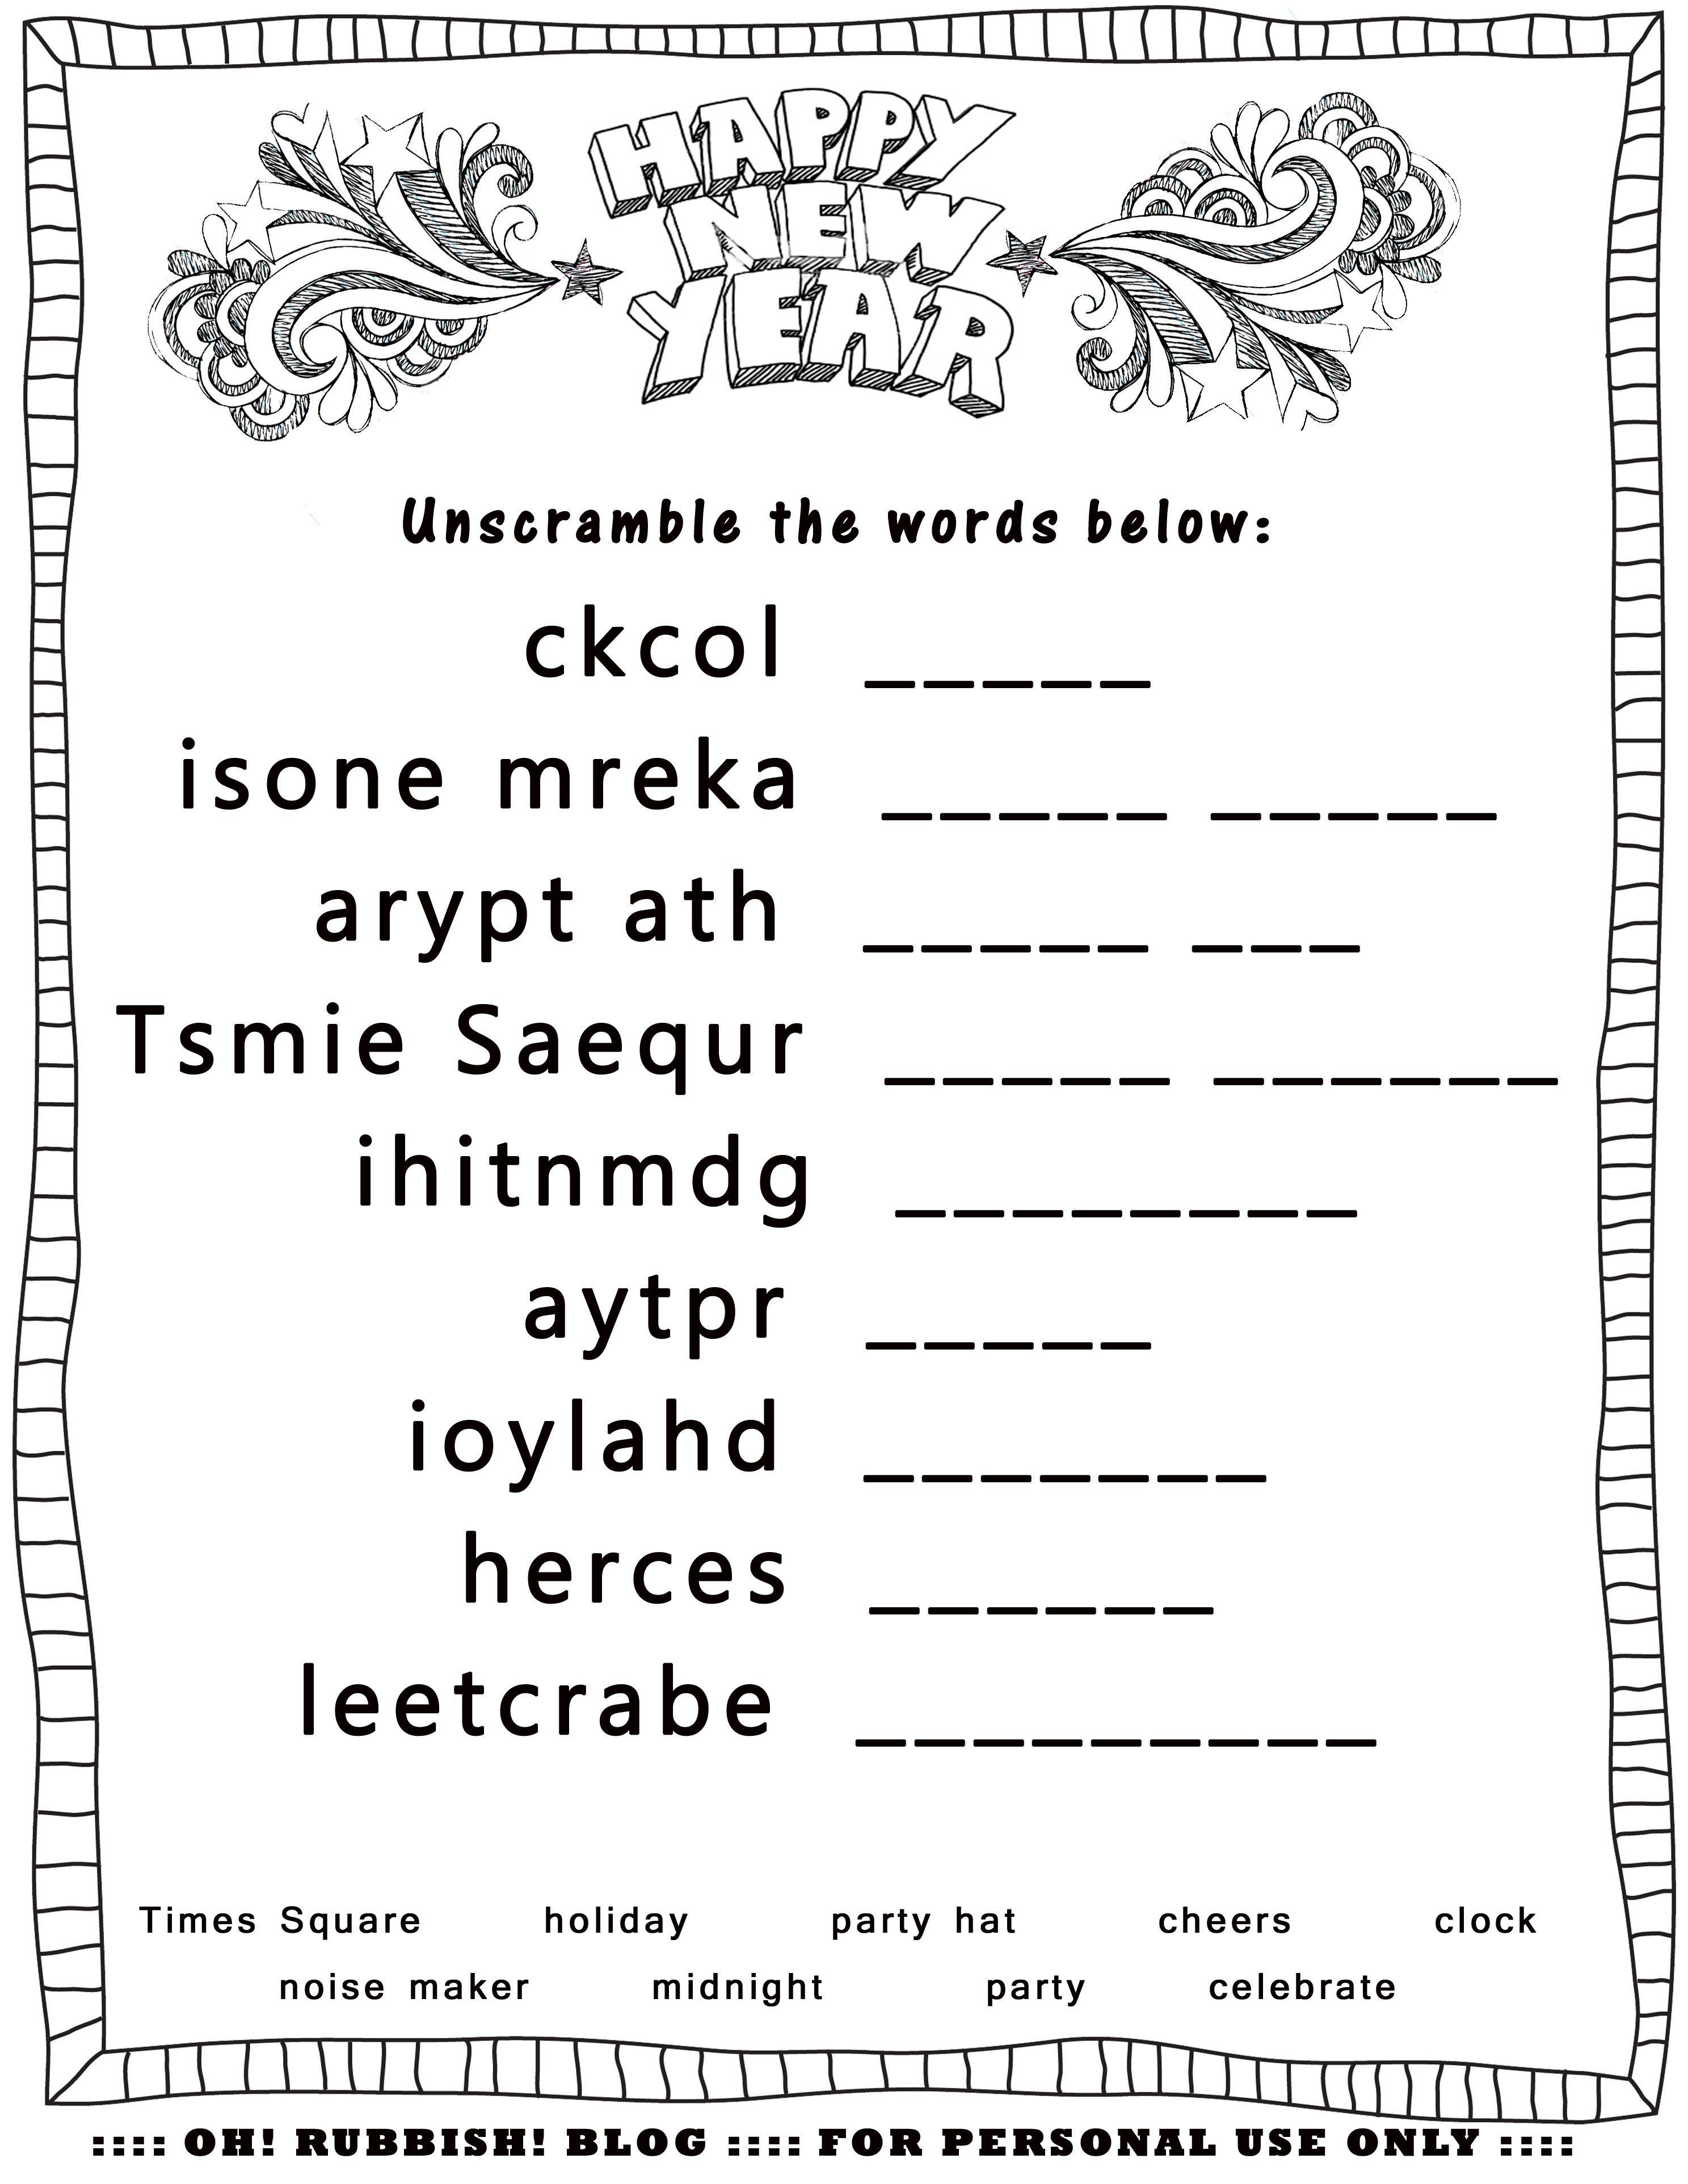 New Year's Printable Activities :: Entertain Your Kids With 4 New - Printable Unscramble Puzzles